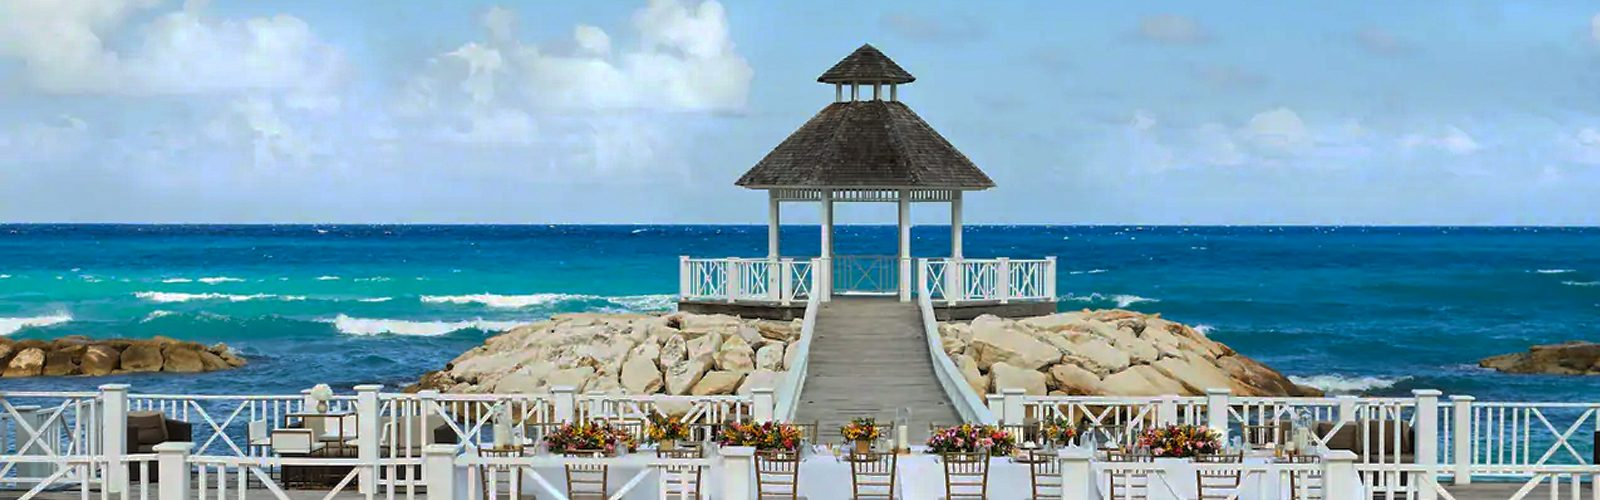 Header Free Weddings Abroad Getting Married Abroad